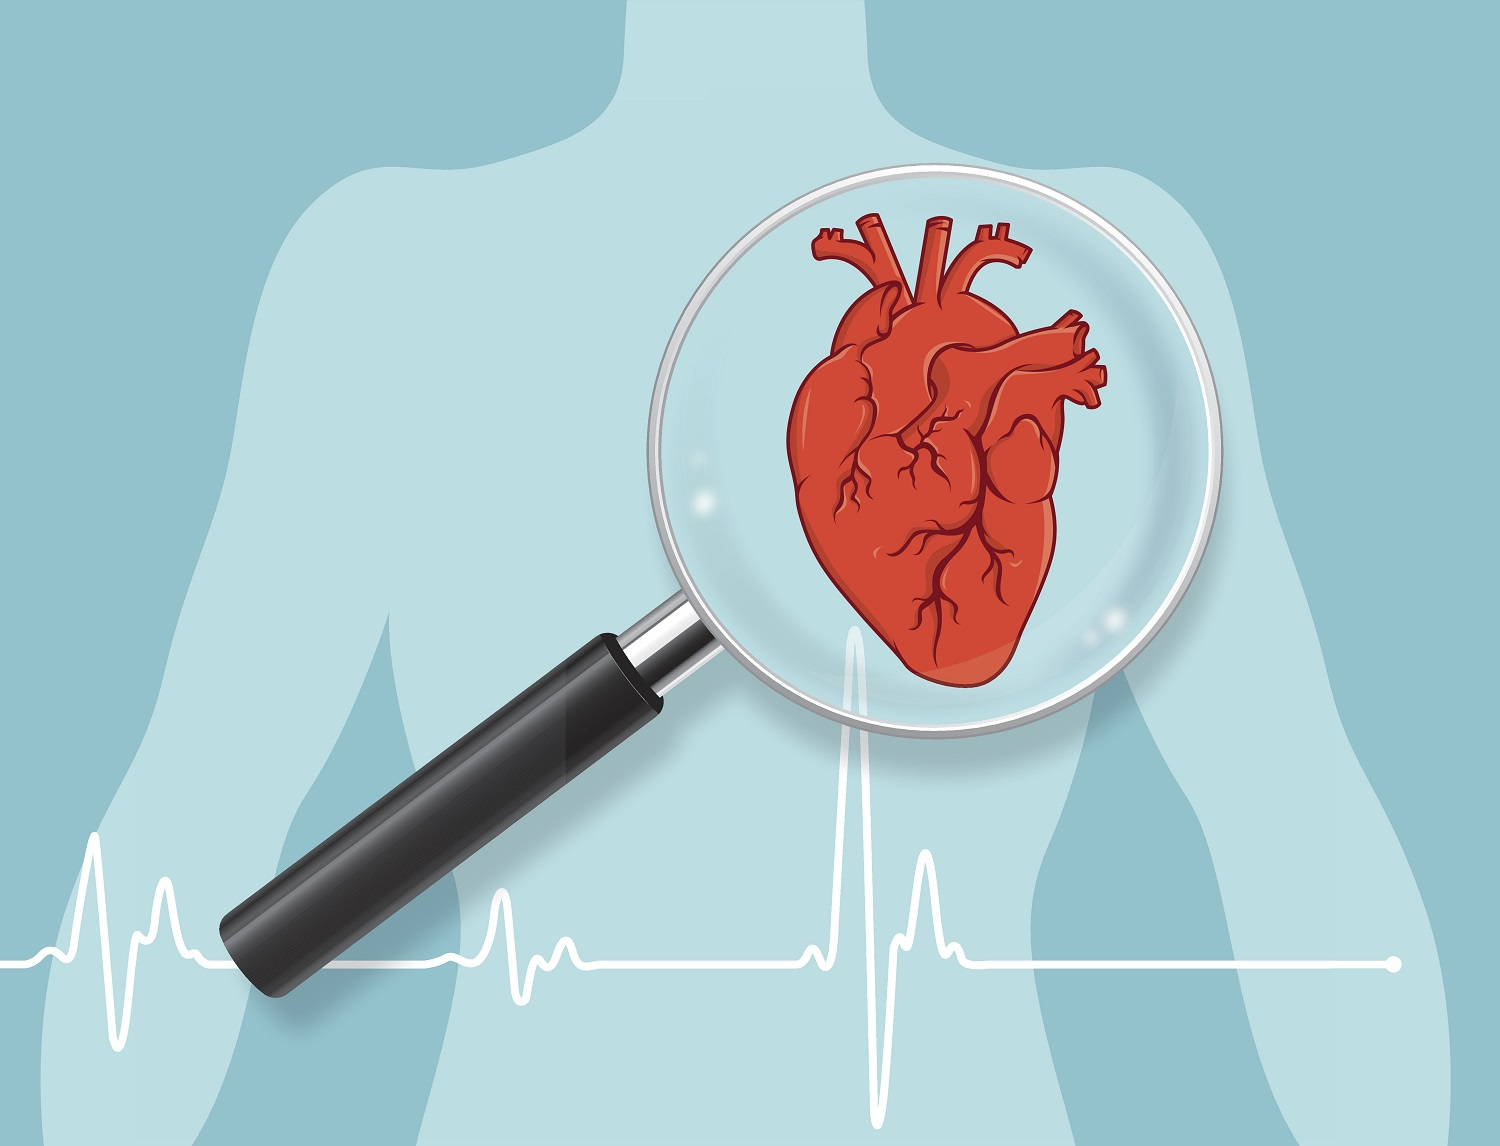 Erectile Dysfunction and Heart Disease recommendations